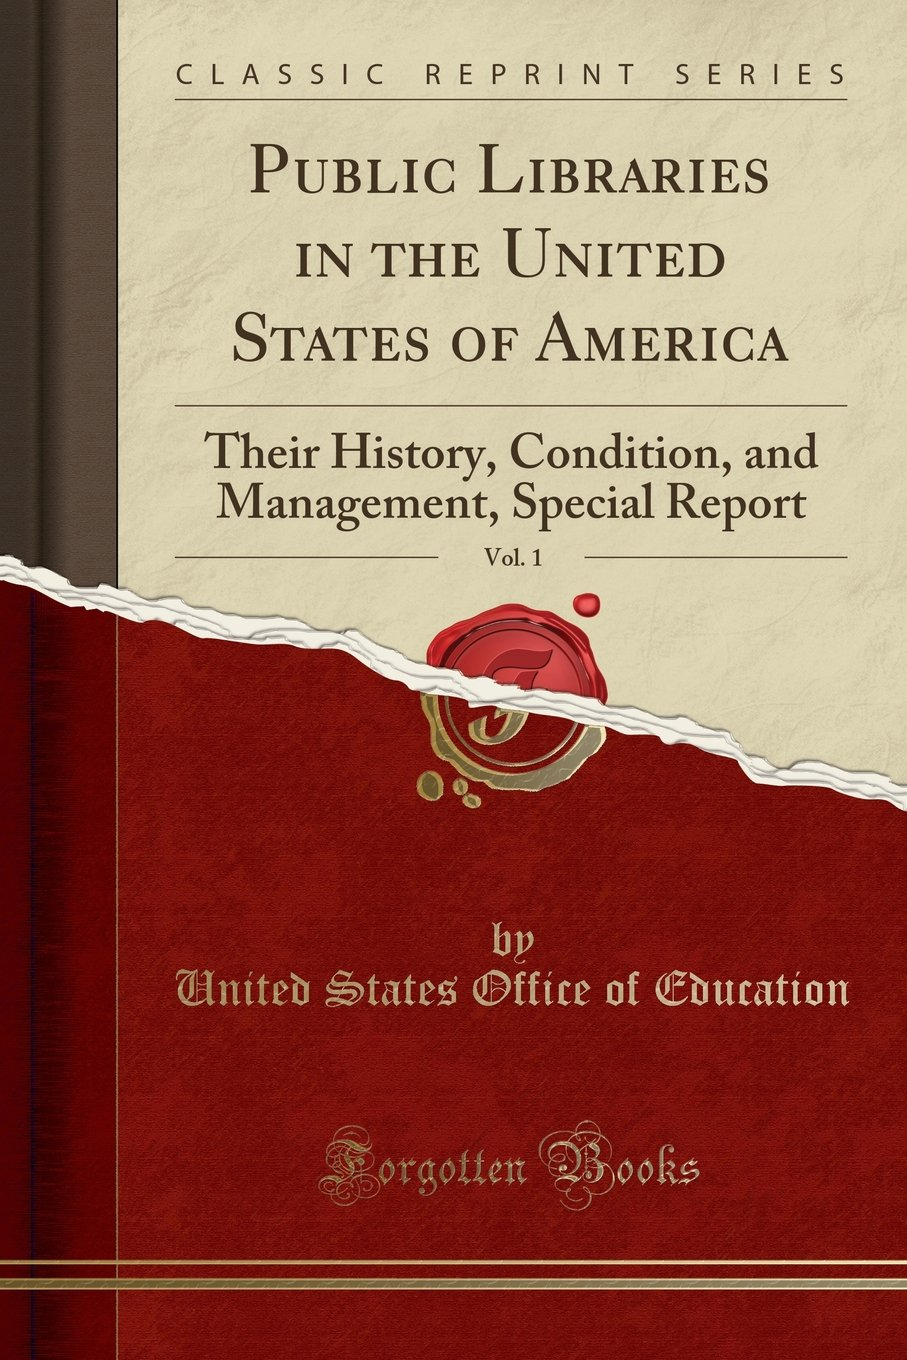 Download Public Libraries in the United States of America, Vol. 1: Their History, Condition, and Management; Special Report (Classic Reprint) PDF